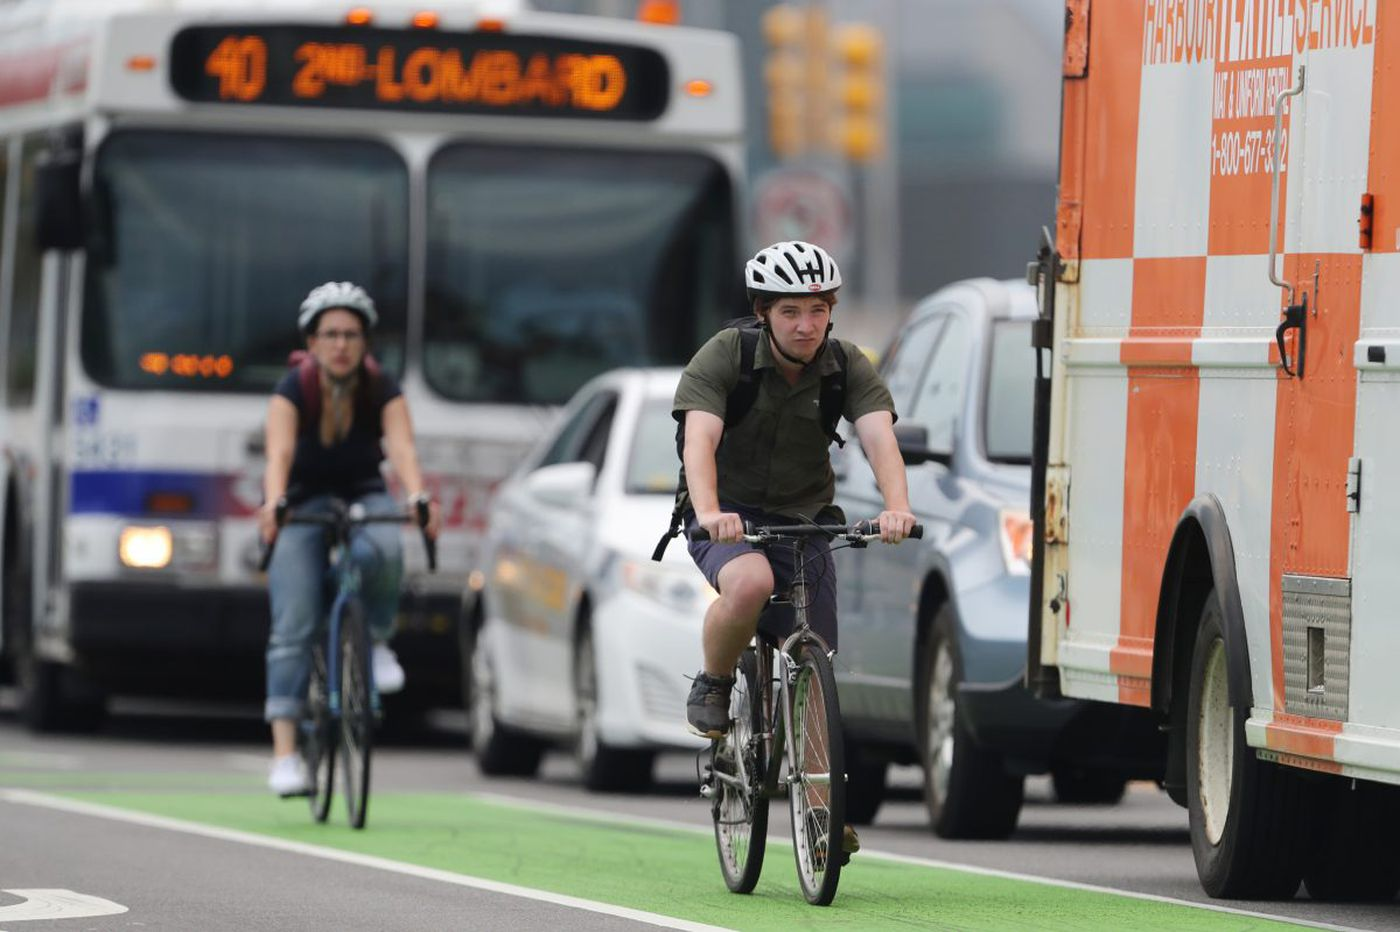 More bike lanes in Philly? Let's put it to a vote